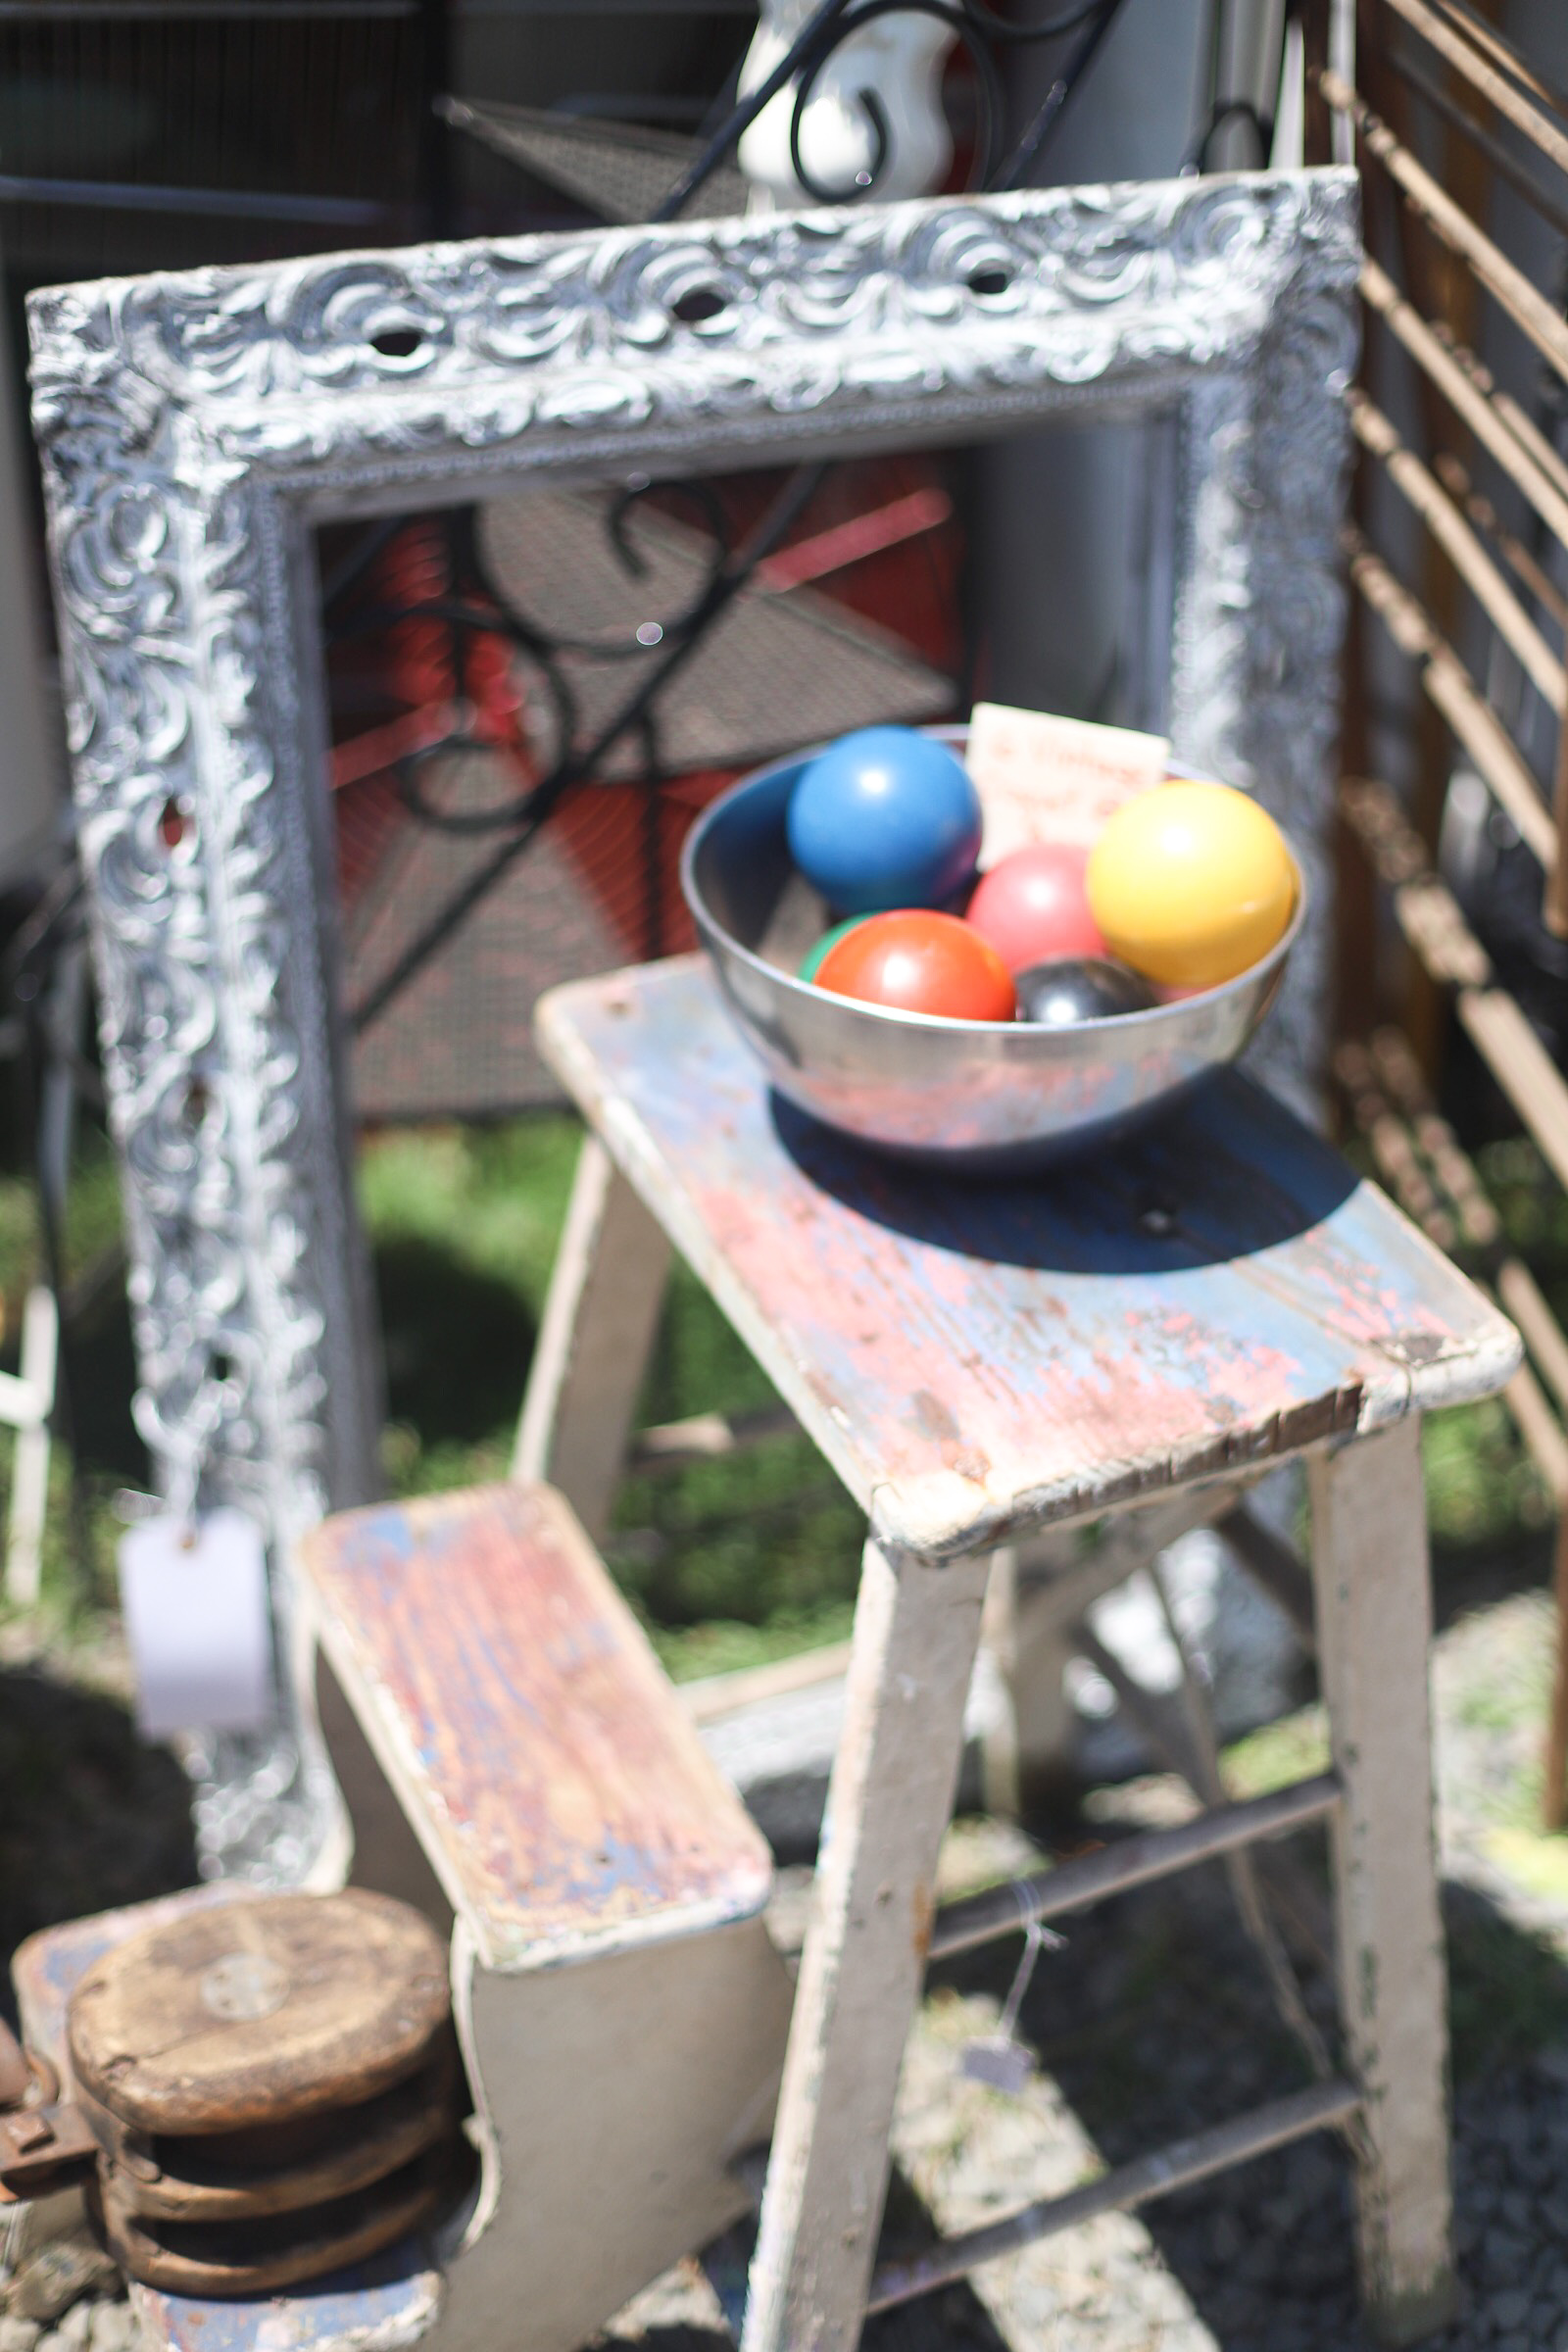 A guide to the Brimfield Antique Show and Flea Market - the largest of its kind in the country - and how to score the best vintage and thrift finds there!